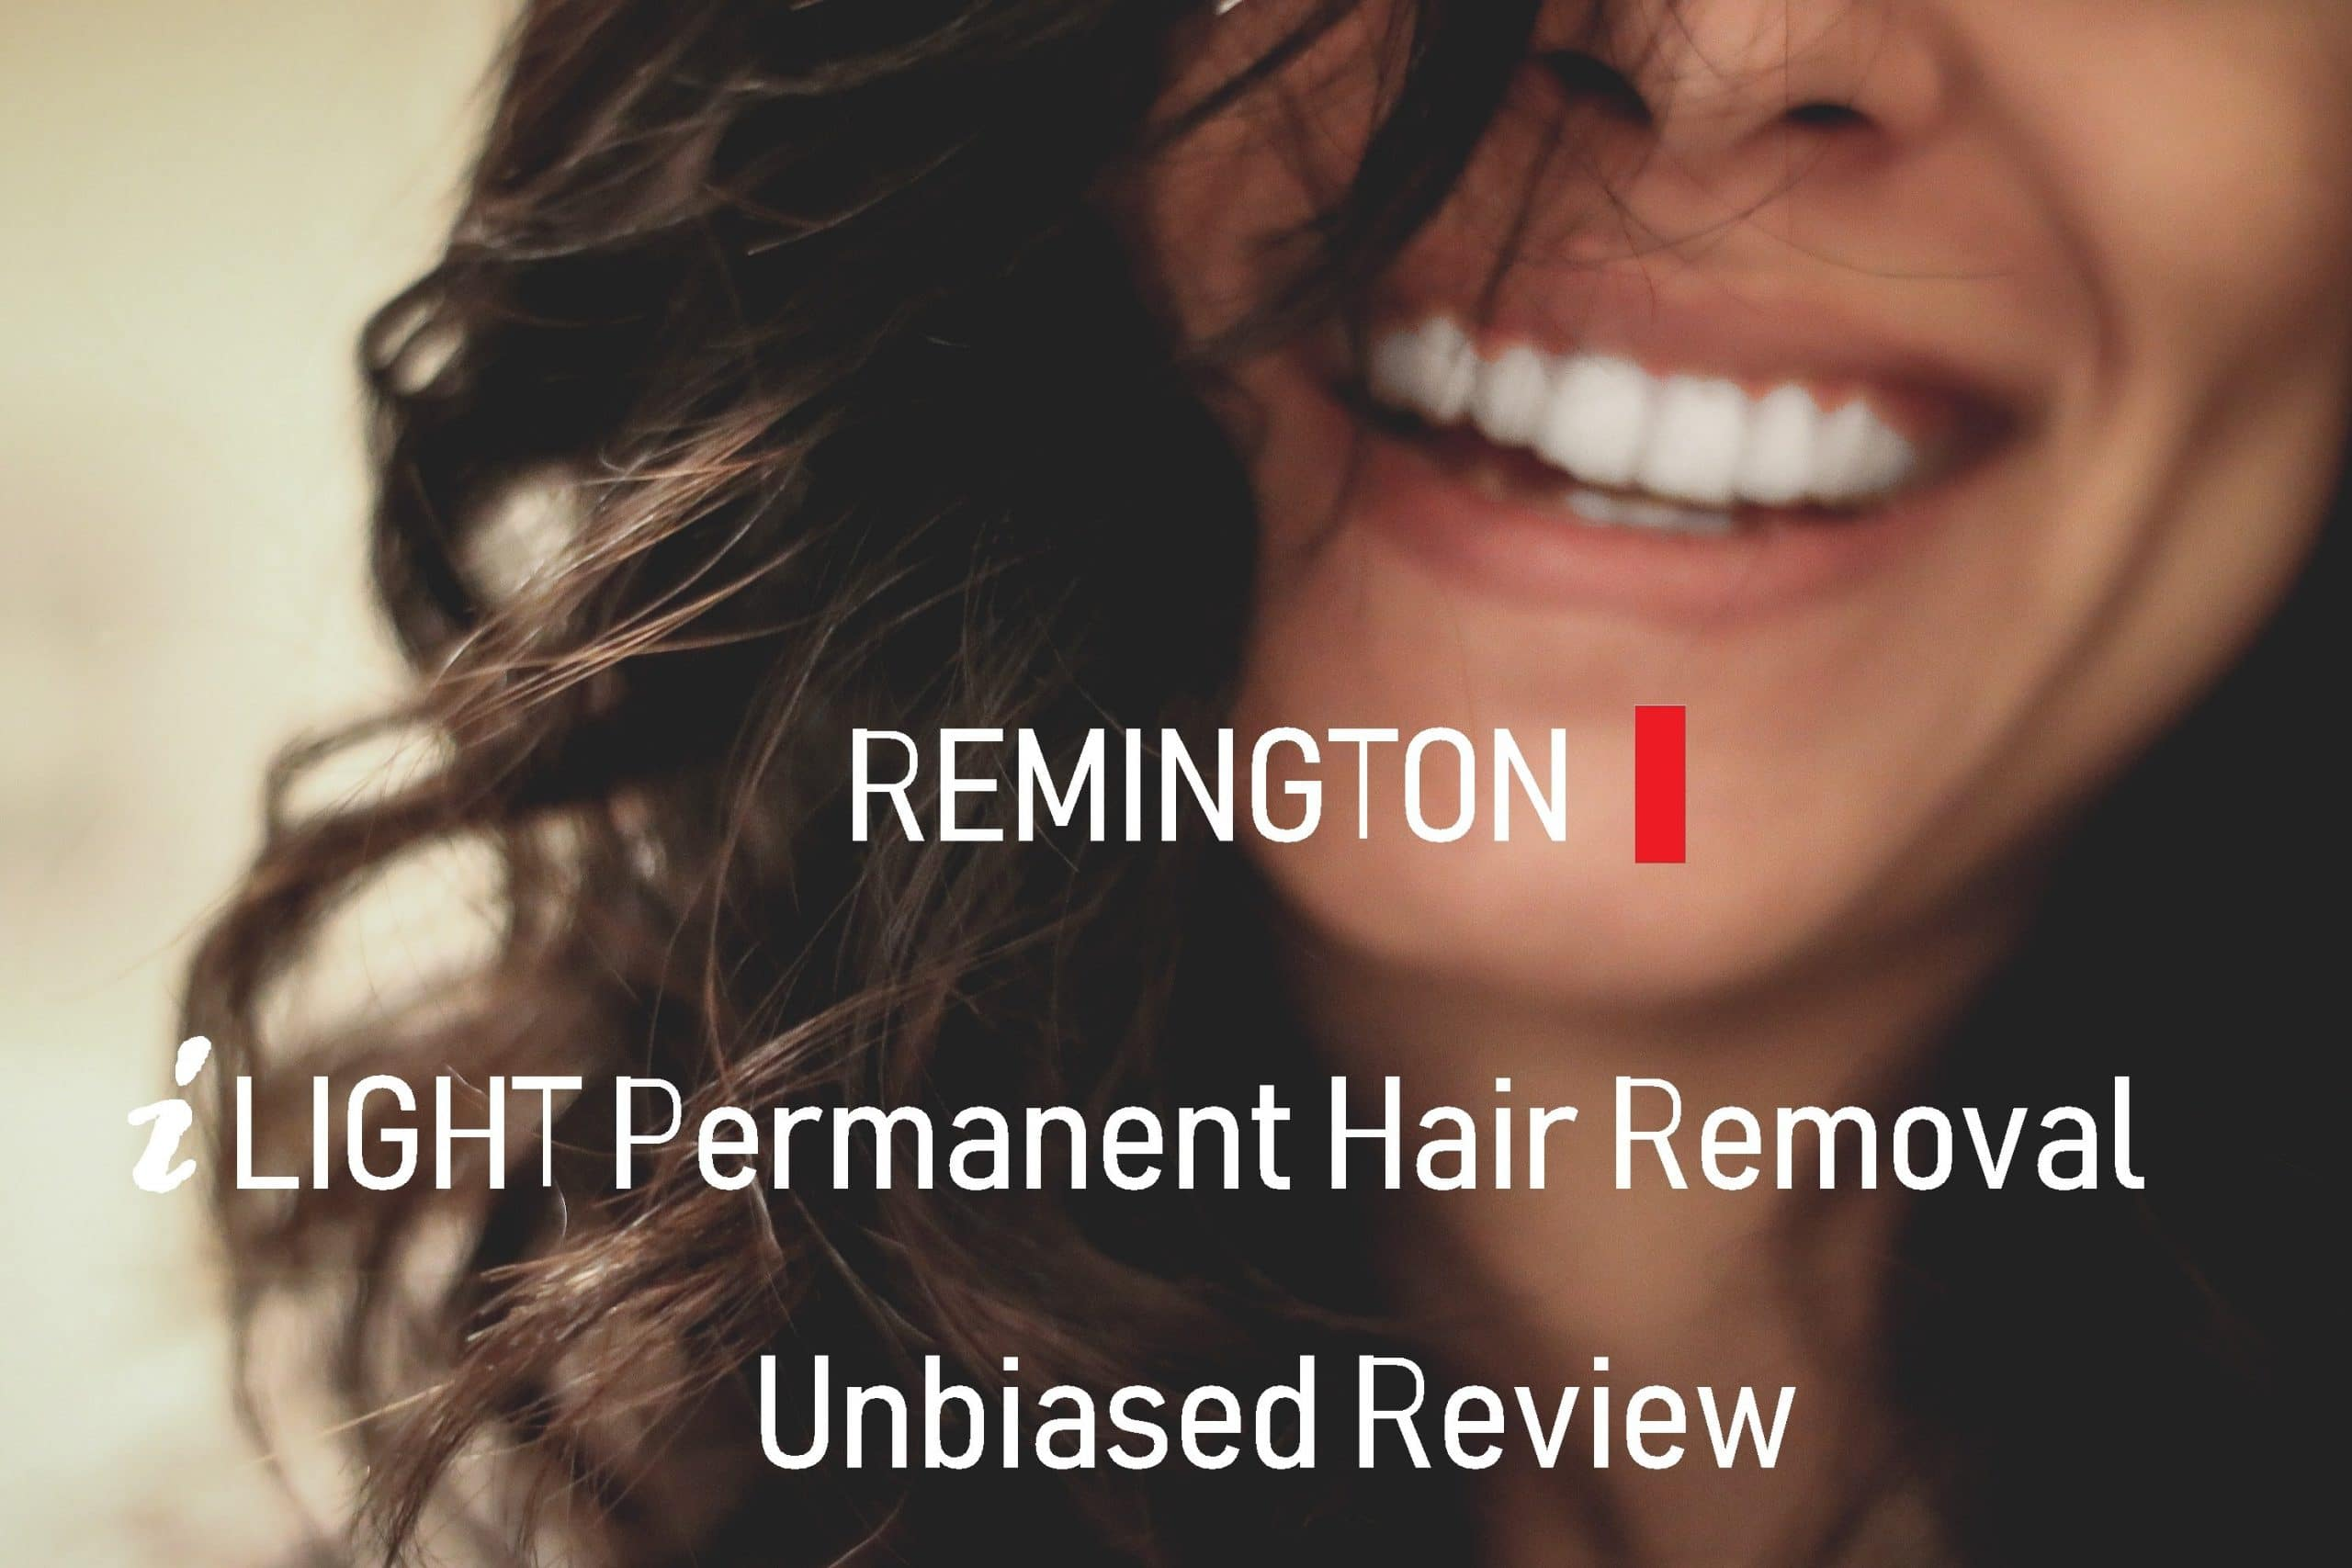 Remington iLIGHT Permanent Hair Removal Systems